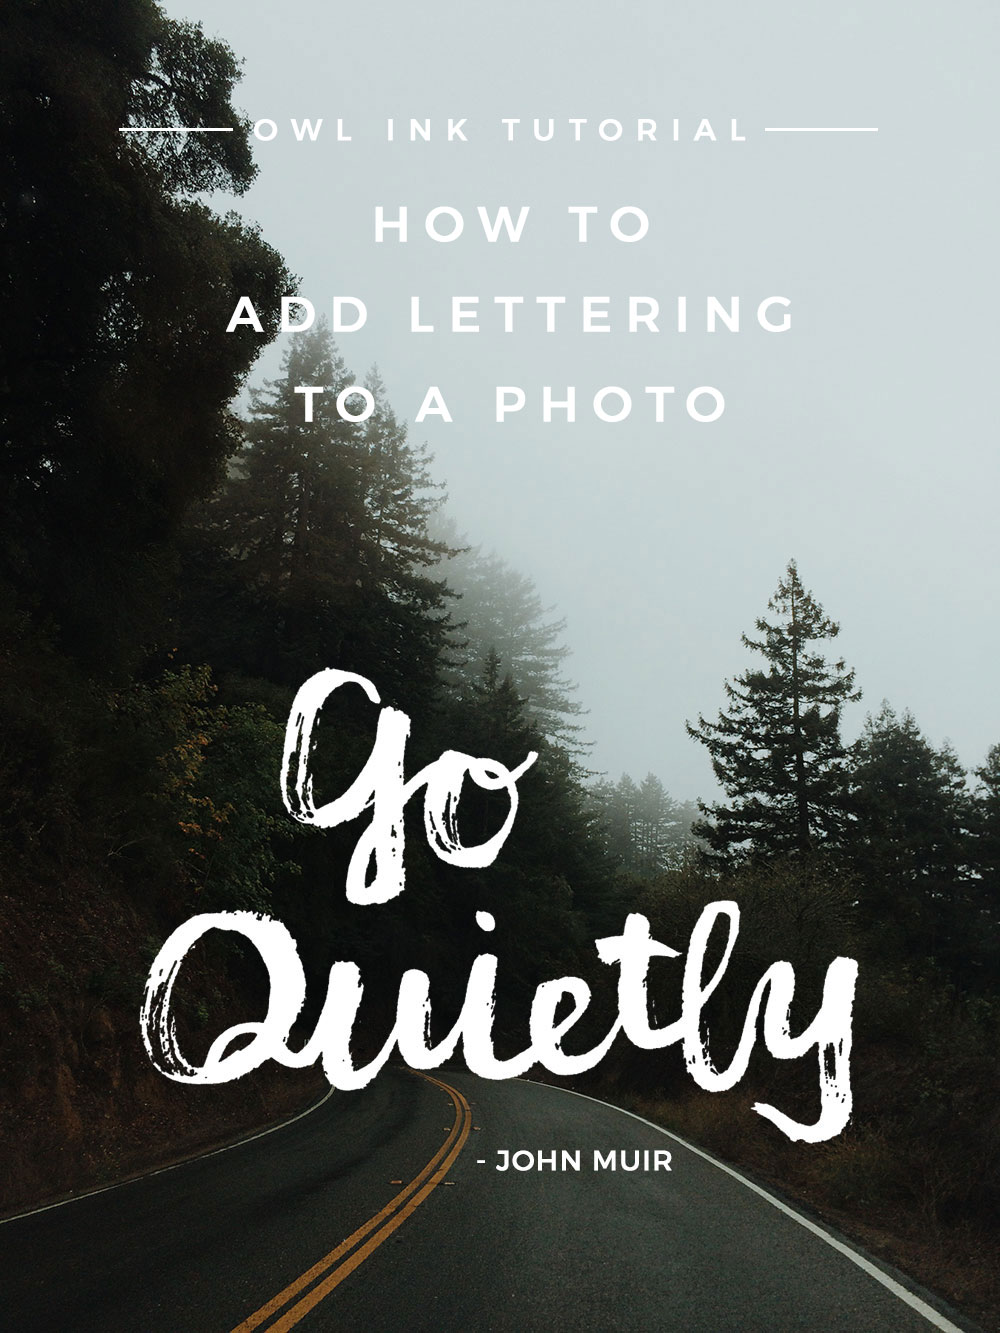 How to Add Lettering to a Photo